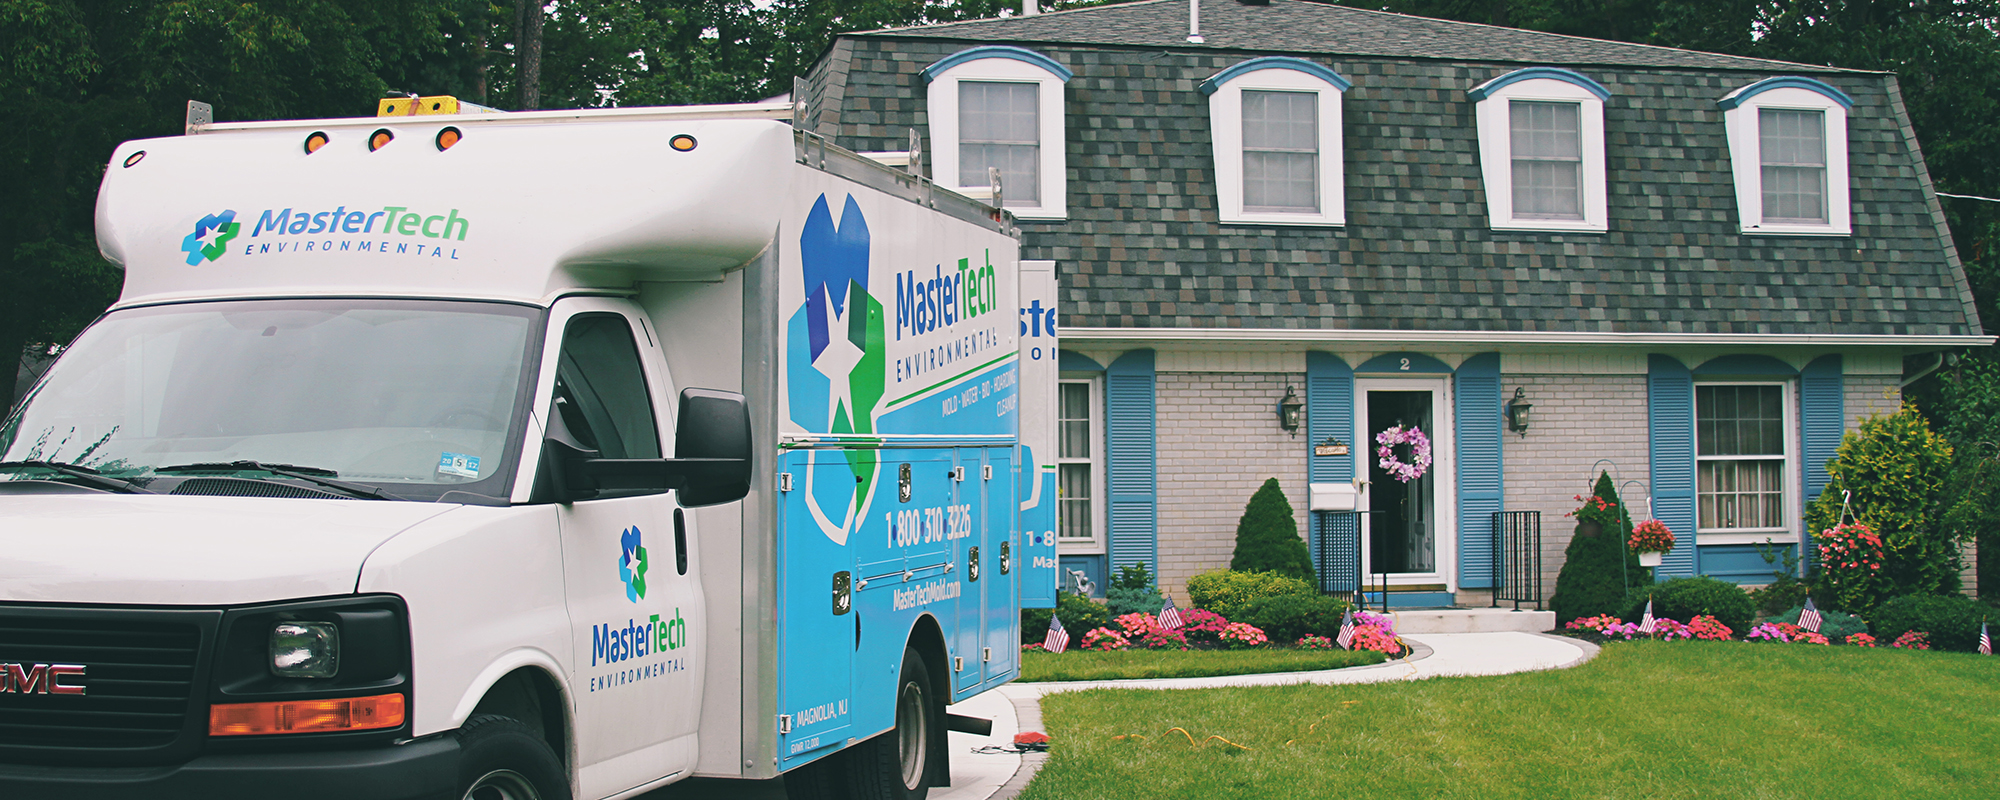 Montgomery county pa mold removal and mold testing mold removal montgomery county pa solutioingenieria Images